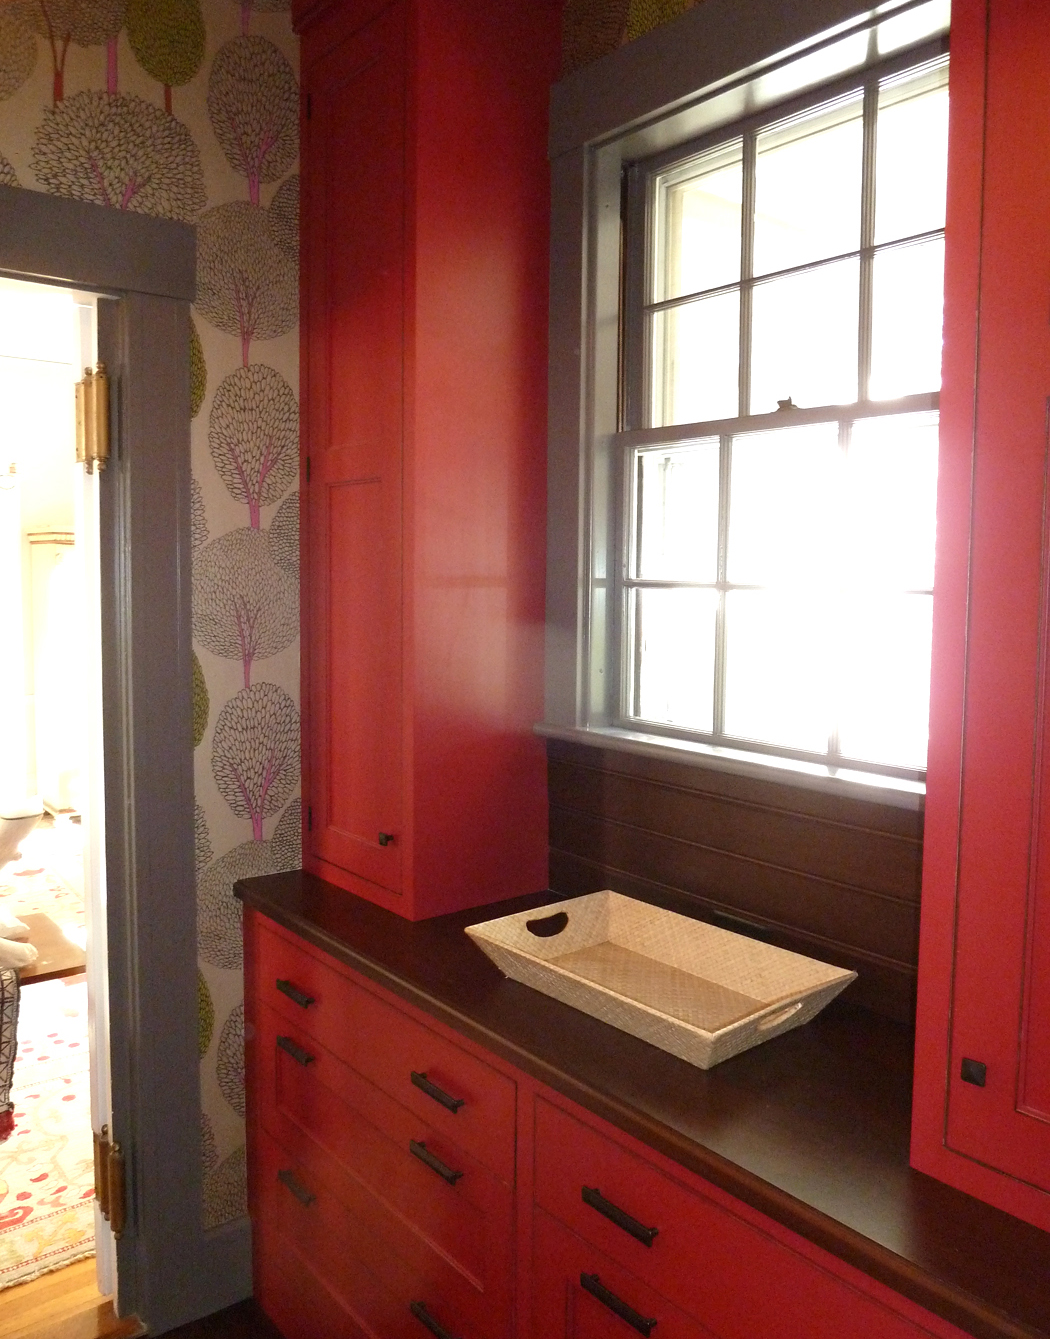 Cherry red cabinets in the butler' s pantry are a happy surprise